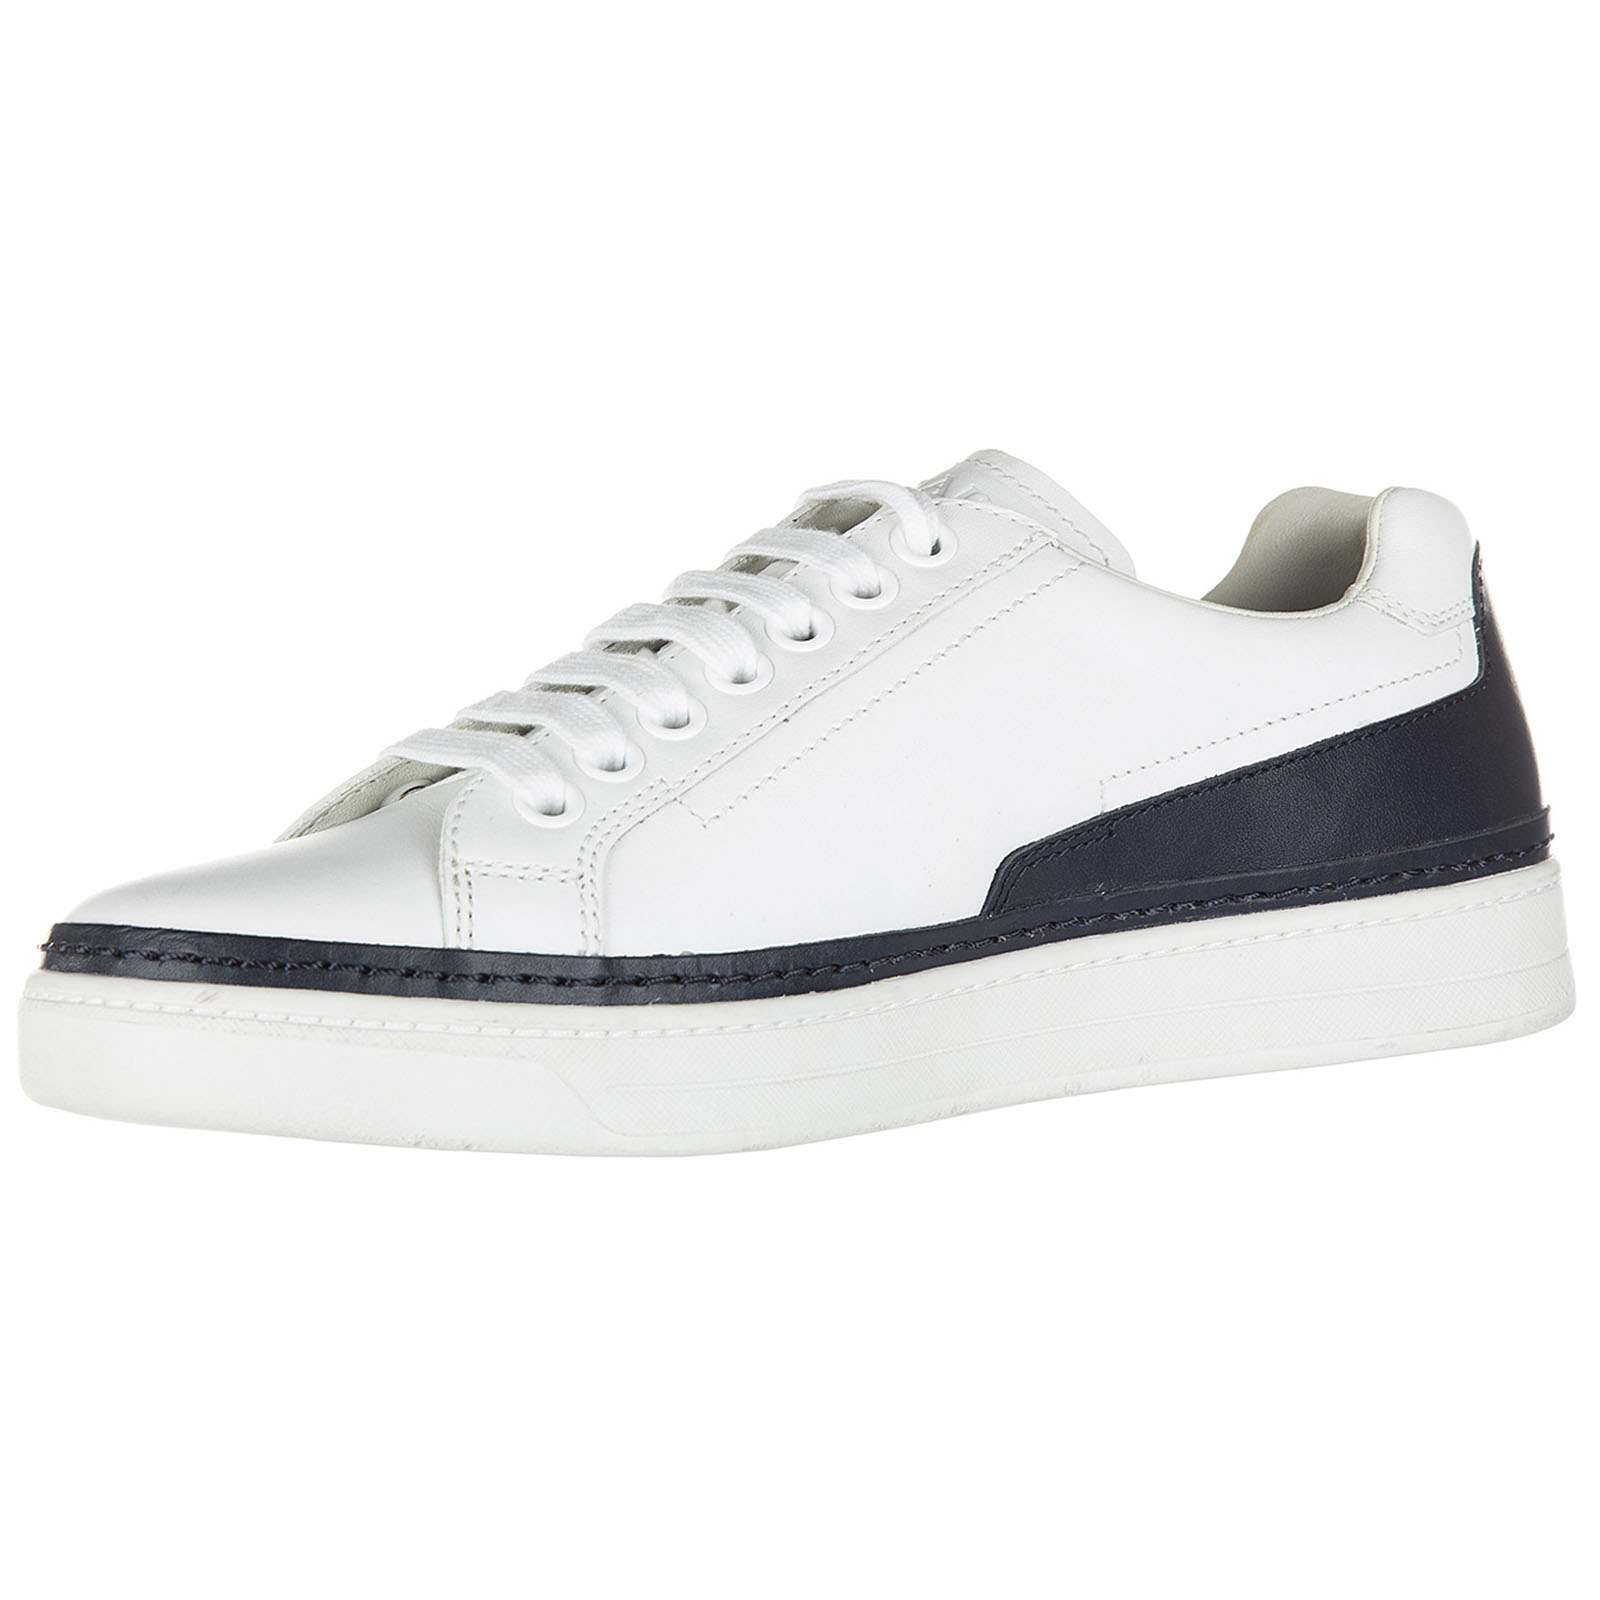 Men's shoes leather trainers sneakers nevada calf